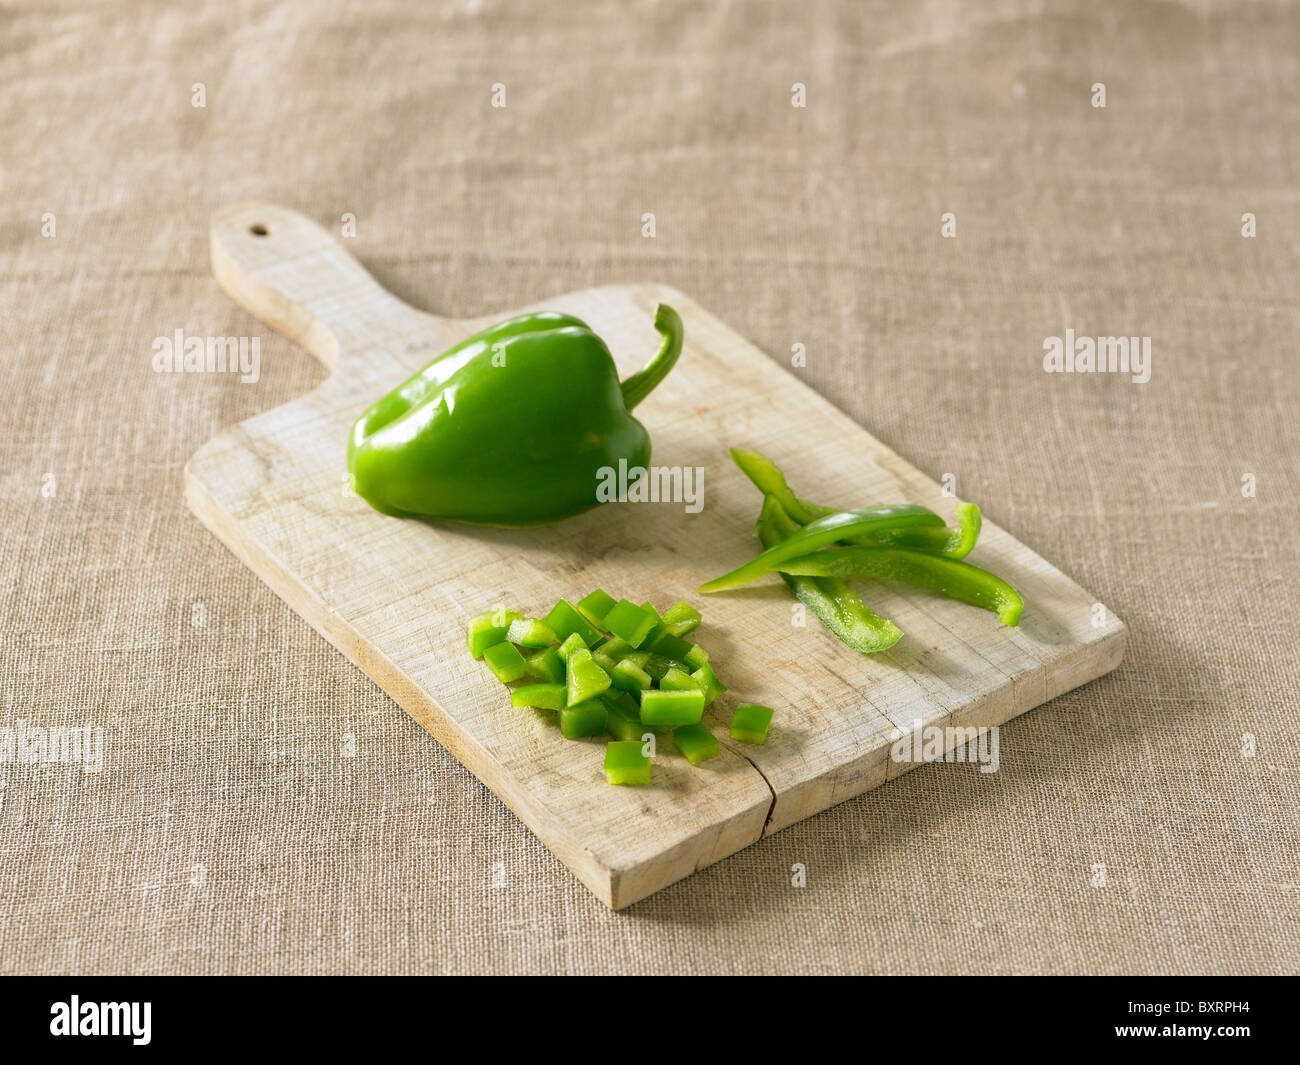 Green pepper on chopping board, chopped and sliced - Stock Image